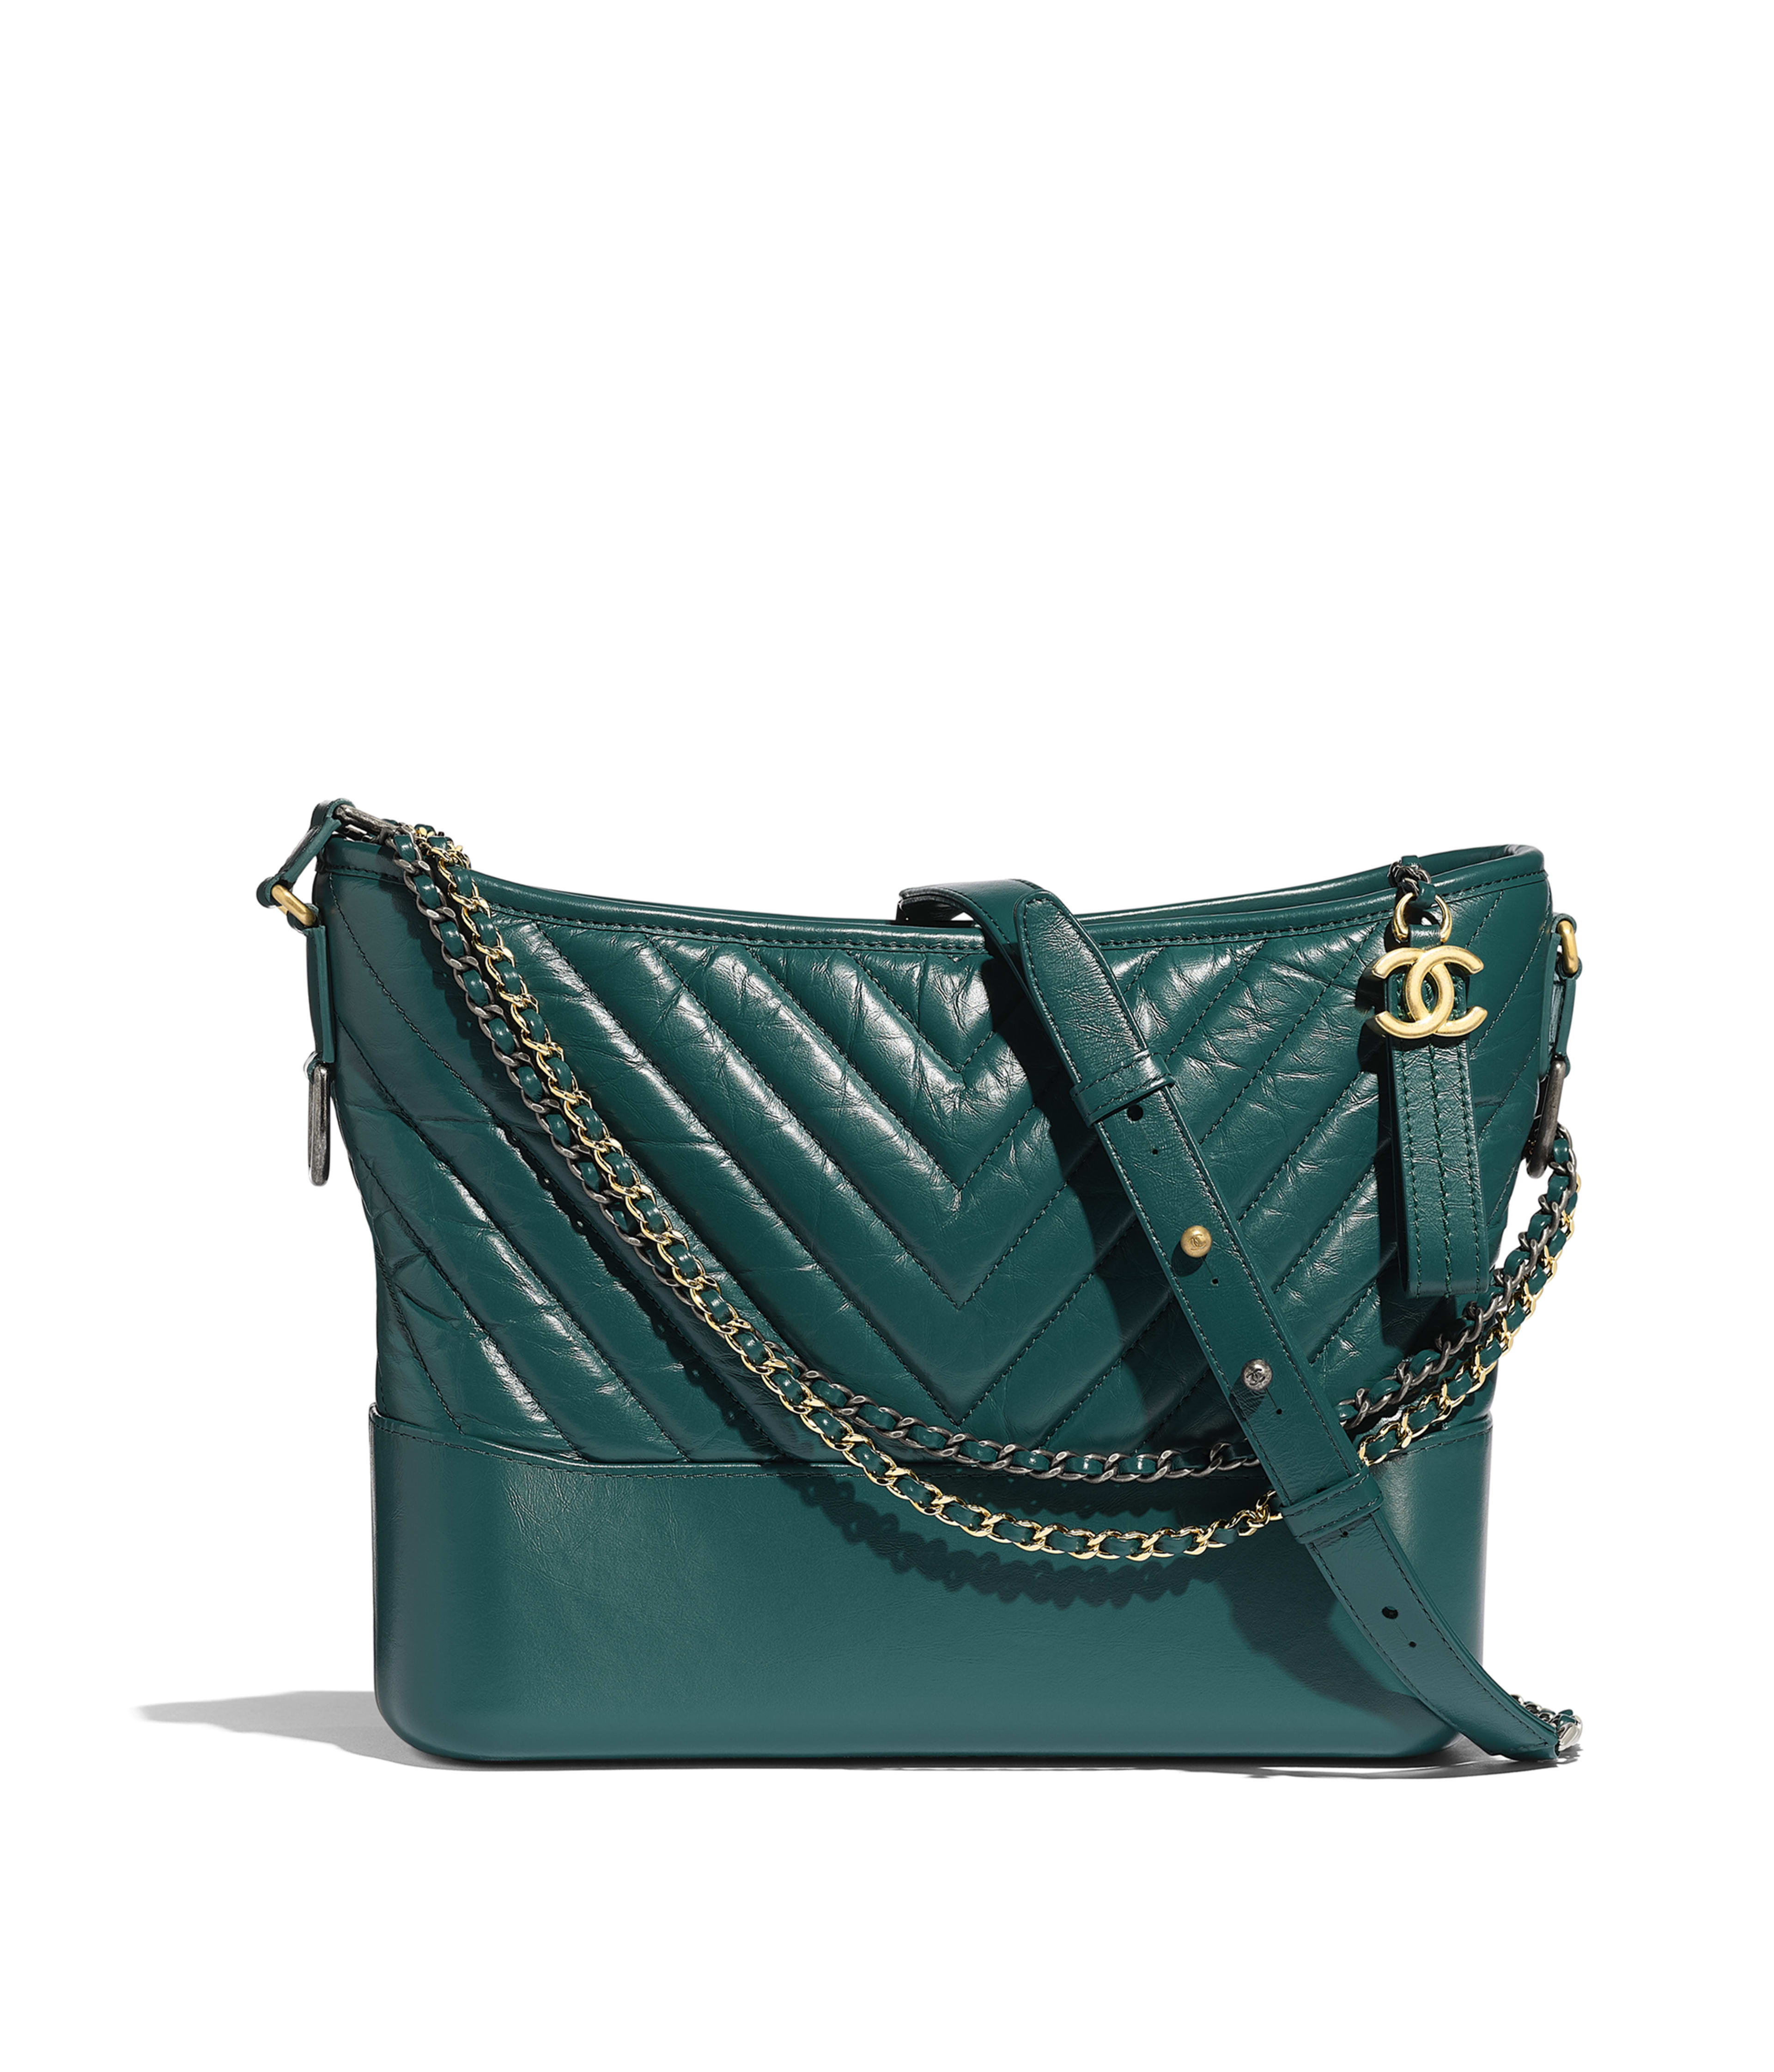 4879365ca27204 CHANEL'S GABRIELLE Hobo Bag Aged Calfskin, Smooth Calfskin, Gold-Tone &  Silver-Tone Metal, Turquoise Ref. A93824Y83824N0415